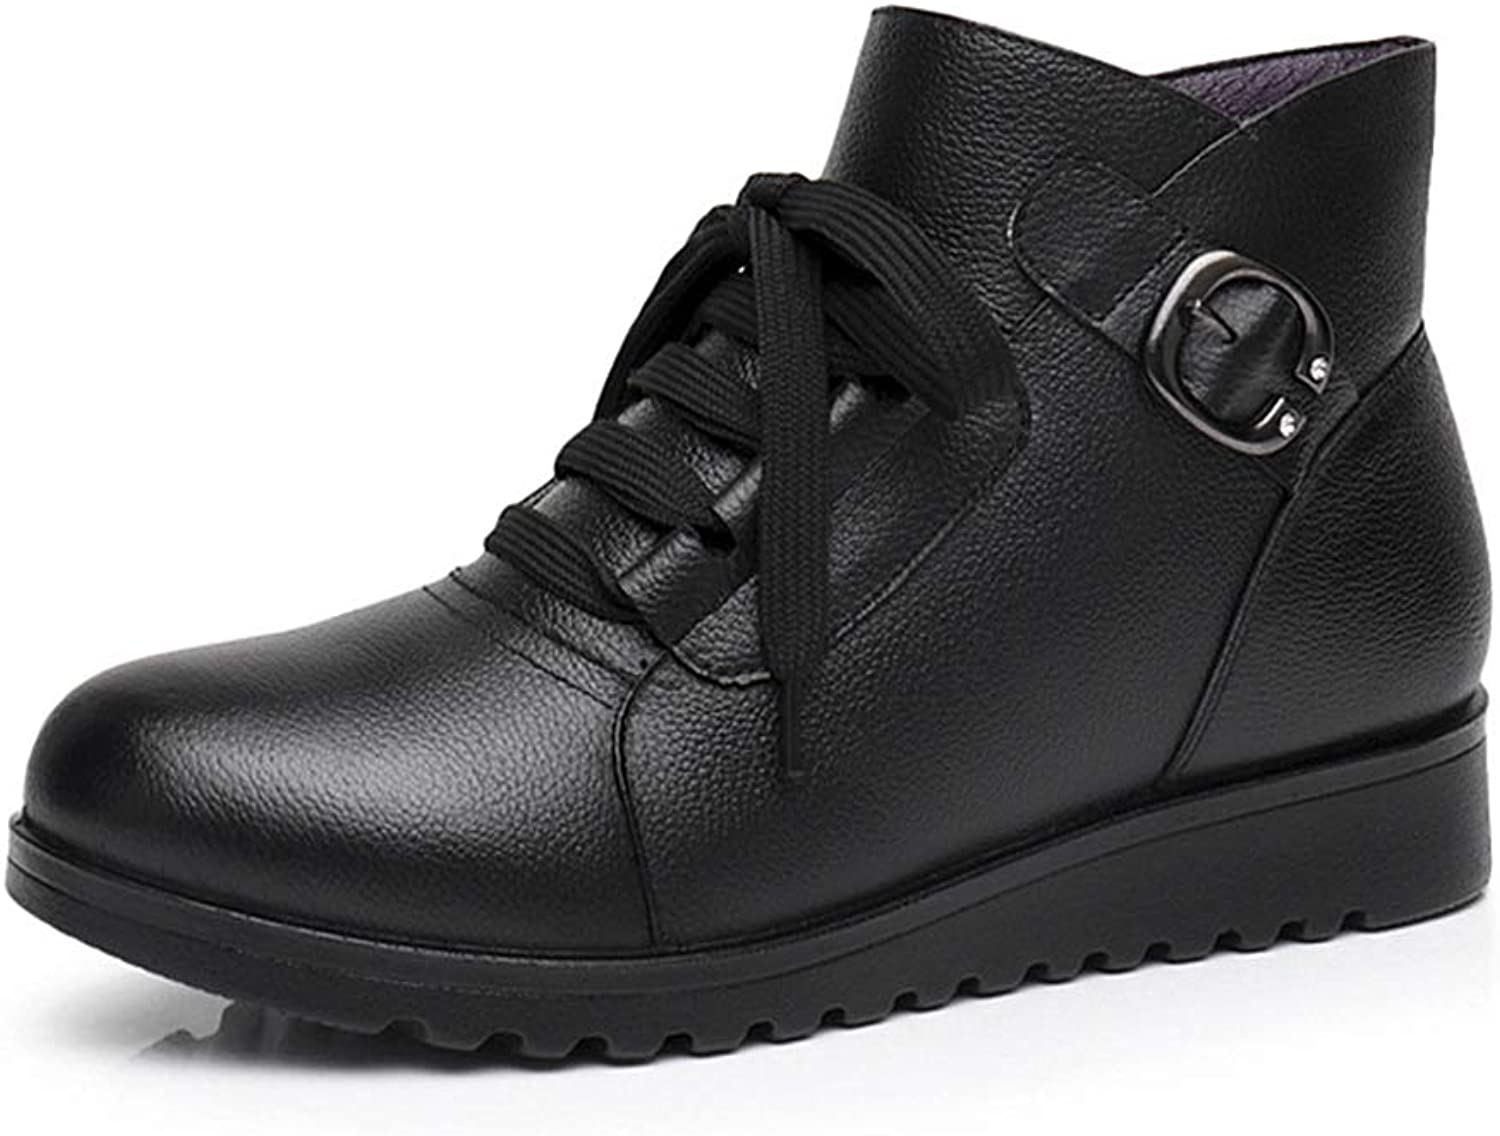 Hoxekle Ankle Boot Flat Platform Women Lace Up Soft Leather Buckle Concise Black Women Winter shoes